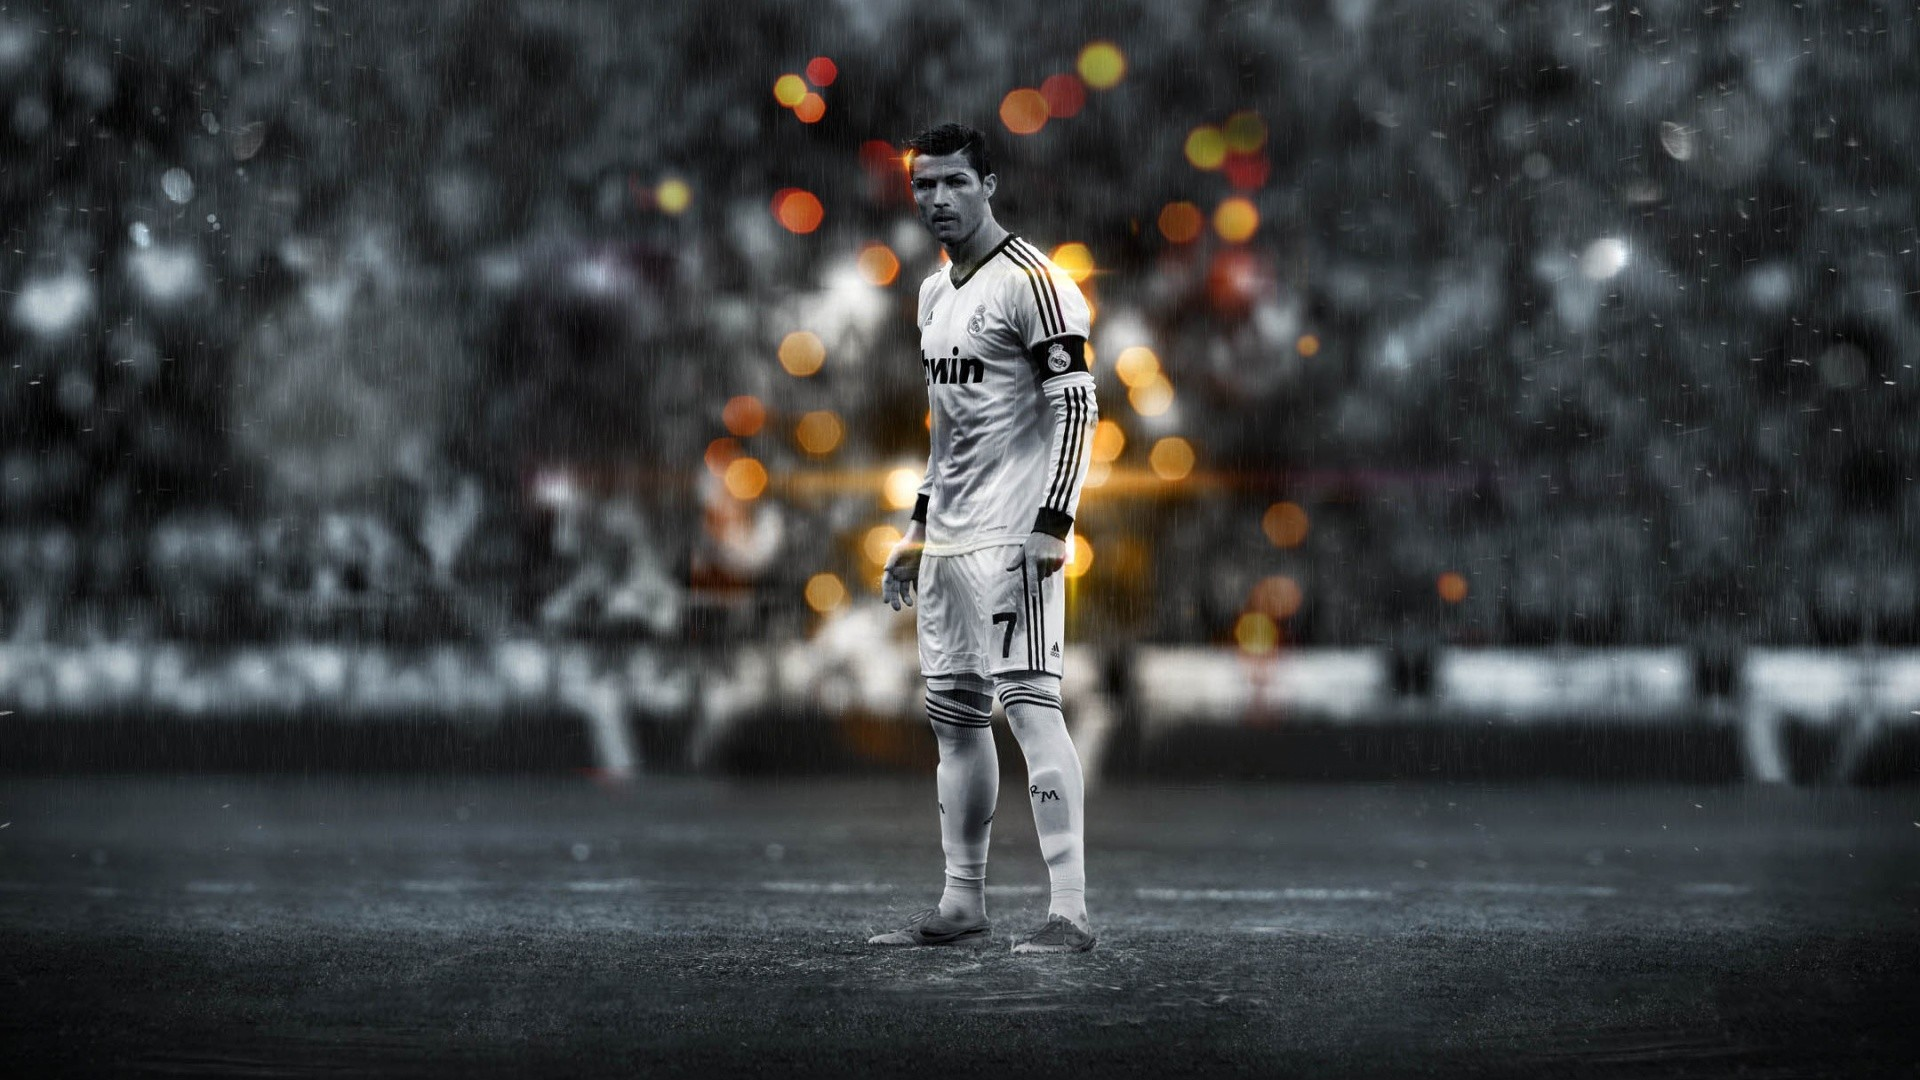 1920x1080 CHRISTIANO-RONALDO-REAL-MADRID-wallpaper-wpc5803458